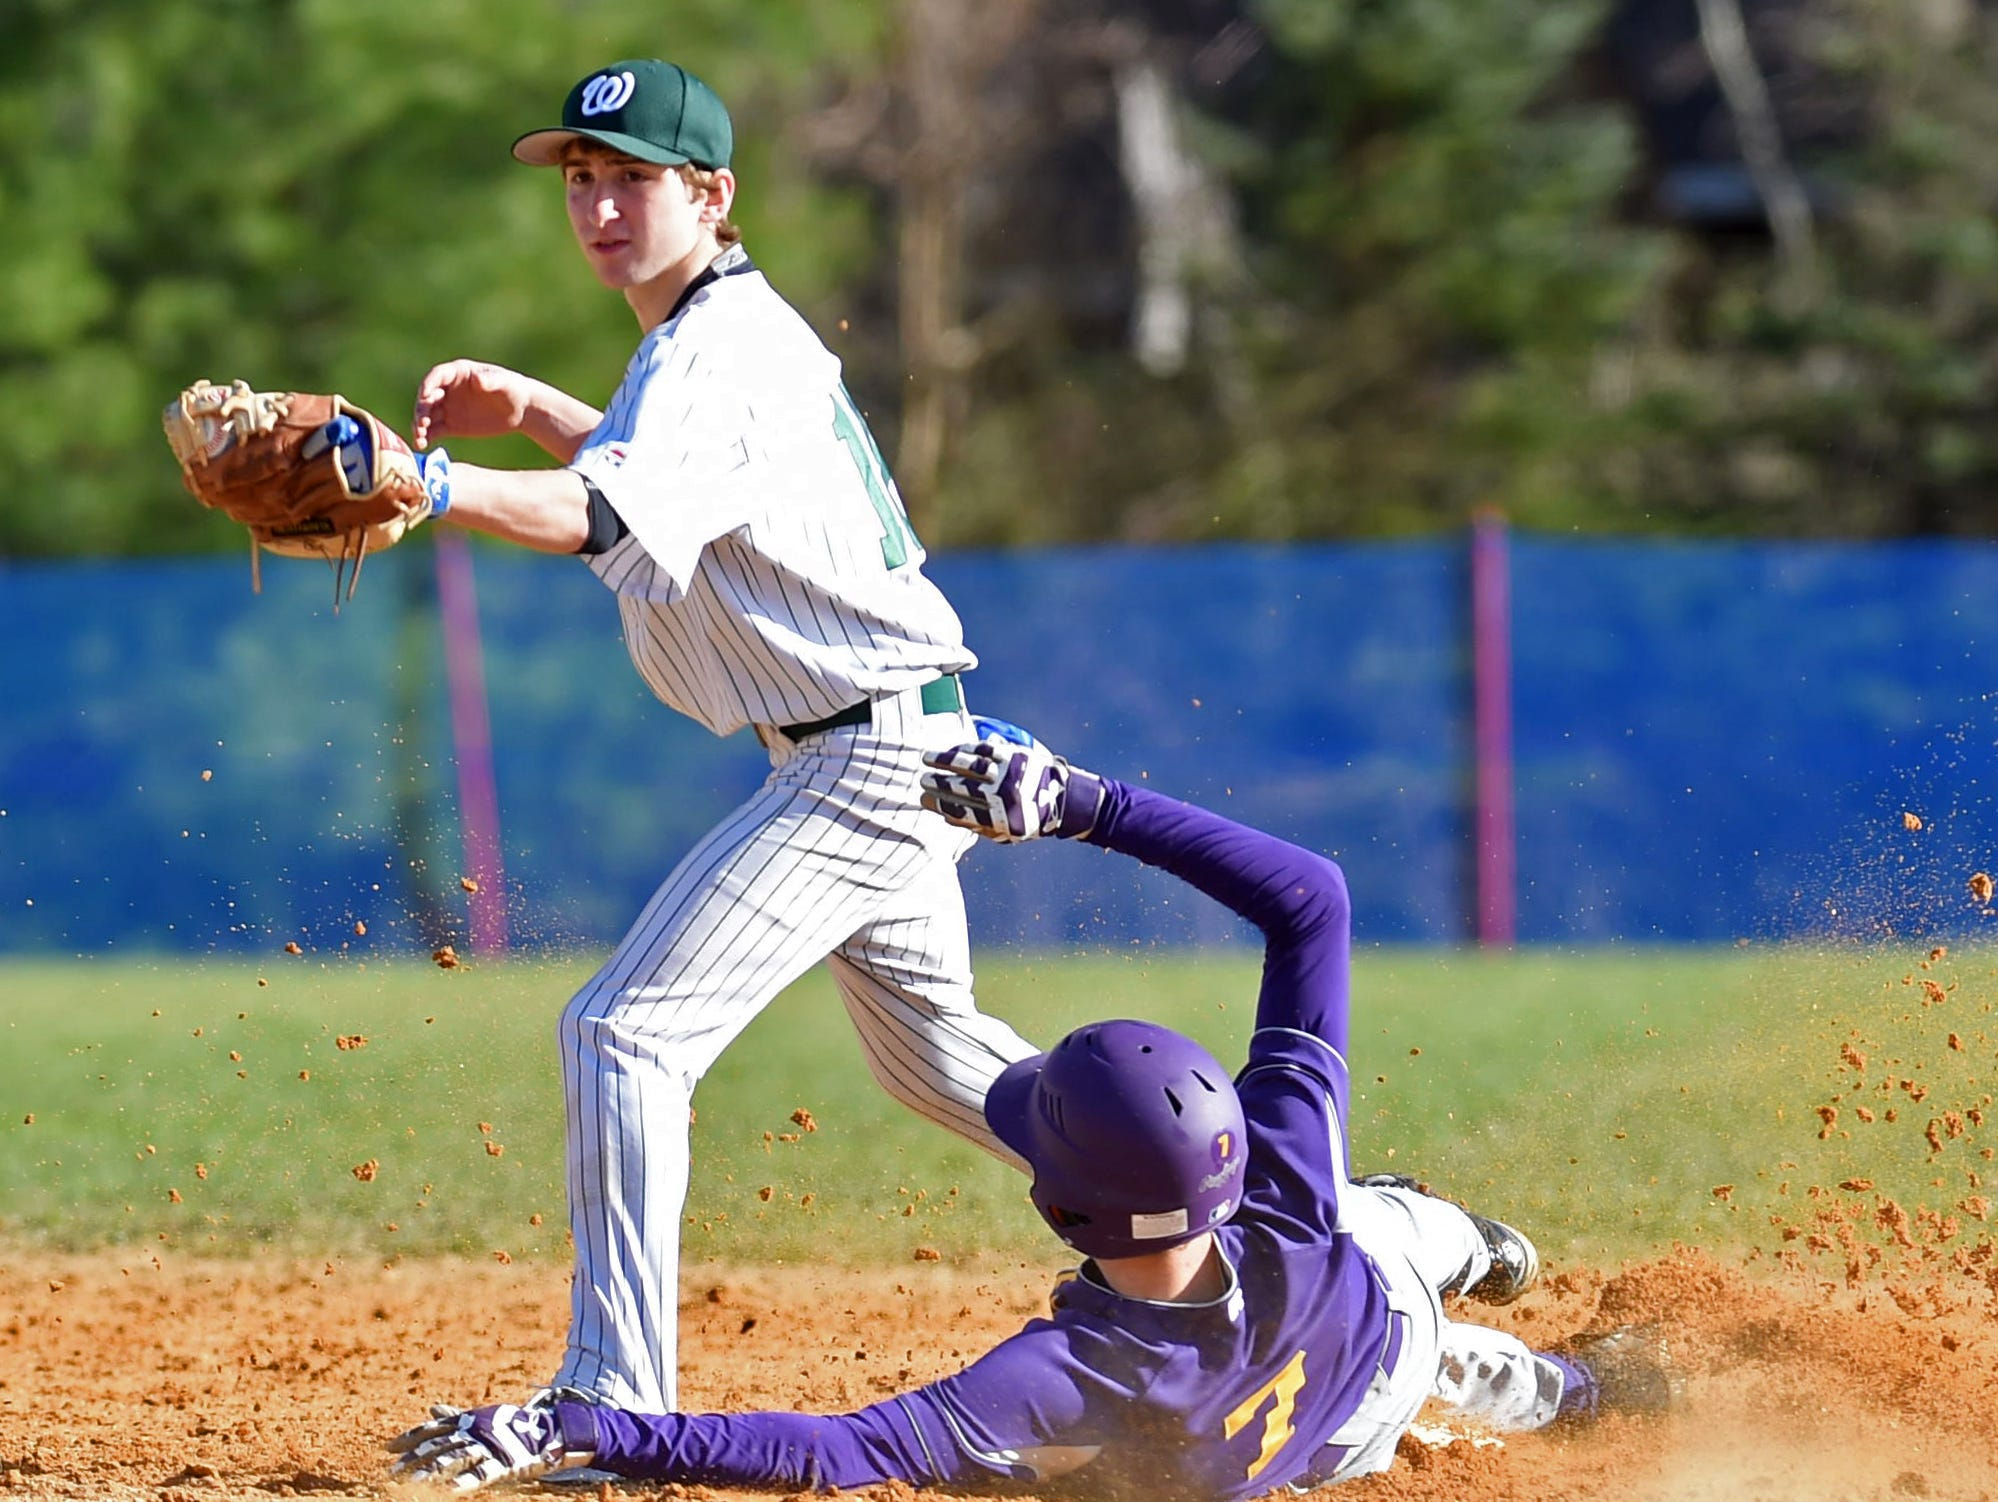 Rhinebeck's Aidan Hack slides into second base under Webutuck's Chris Milano during Wednesday's game at Rhinebeck.